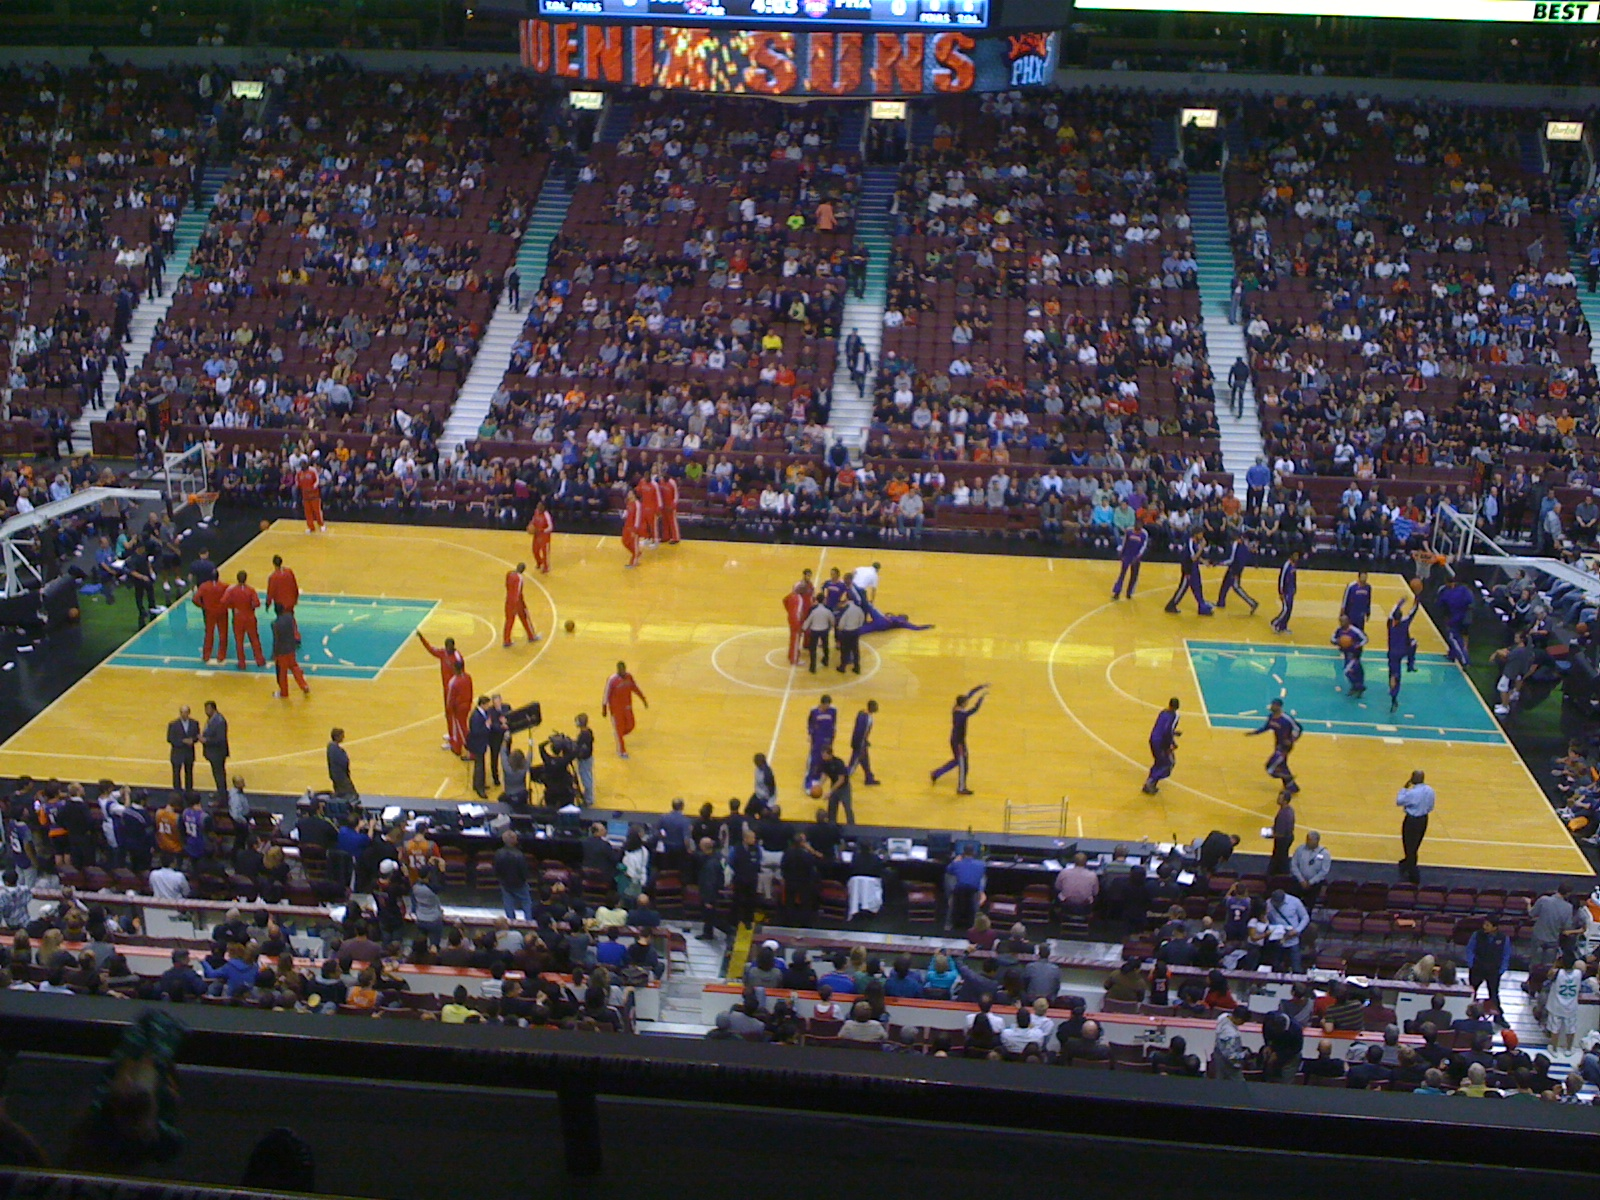 File:Phoenix Suns in Vancouver.jpg - Wikimedia Commons